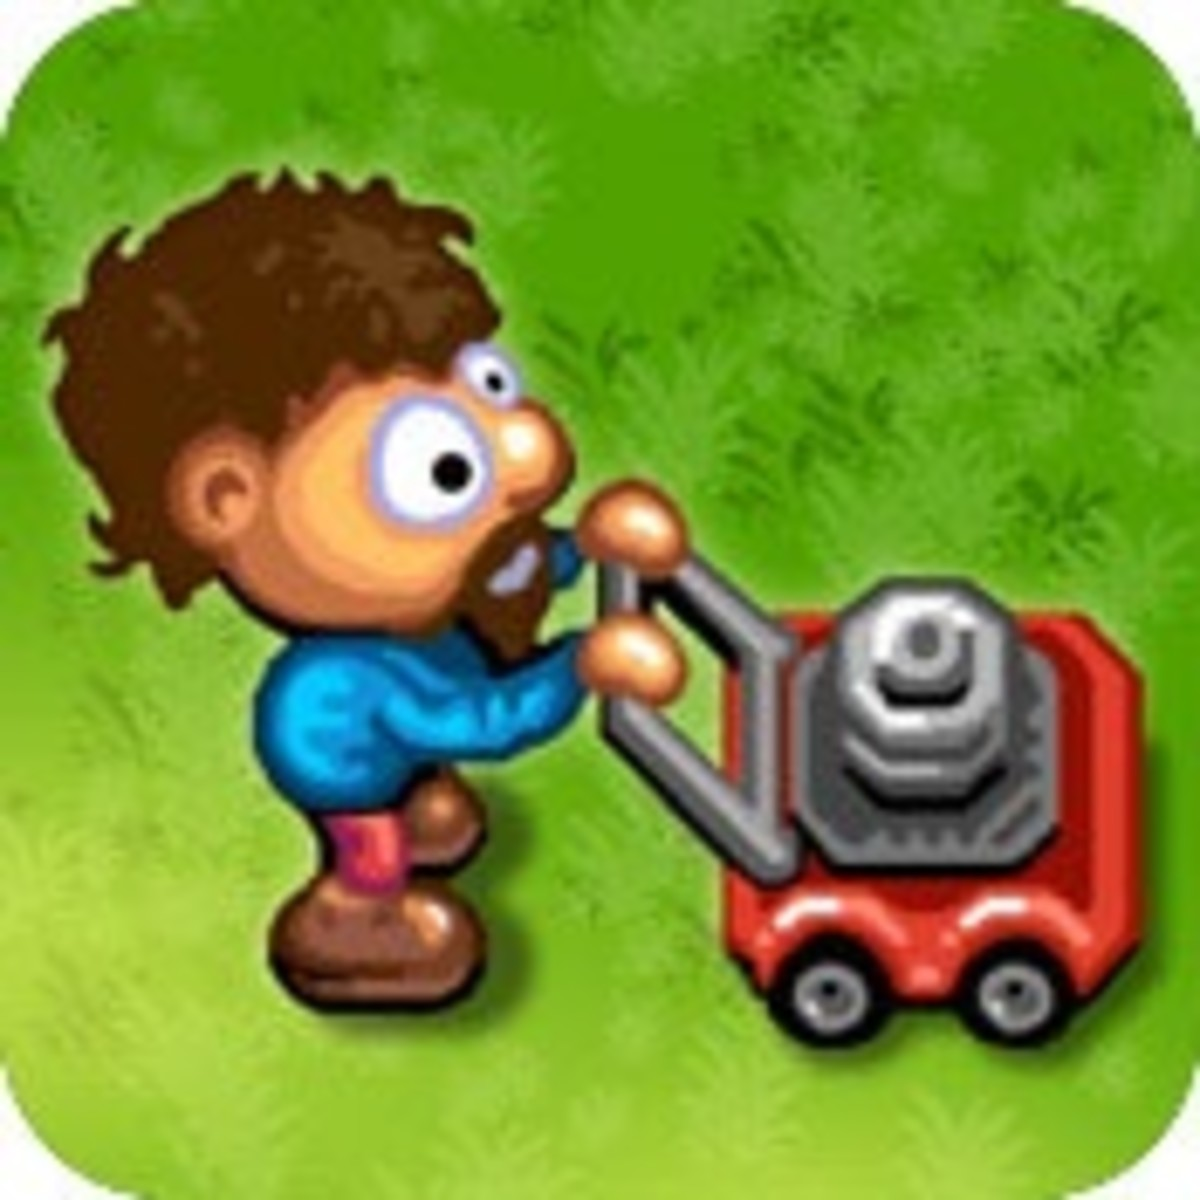 sunday-lawn-game-app-for-iphone-tips-hints-cheats-level-walkthroughs